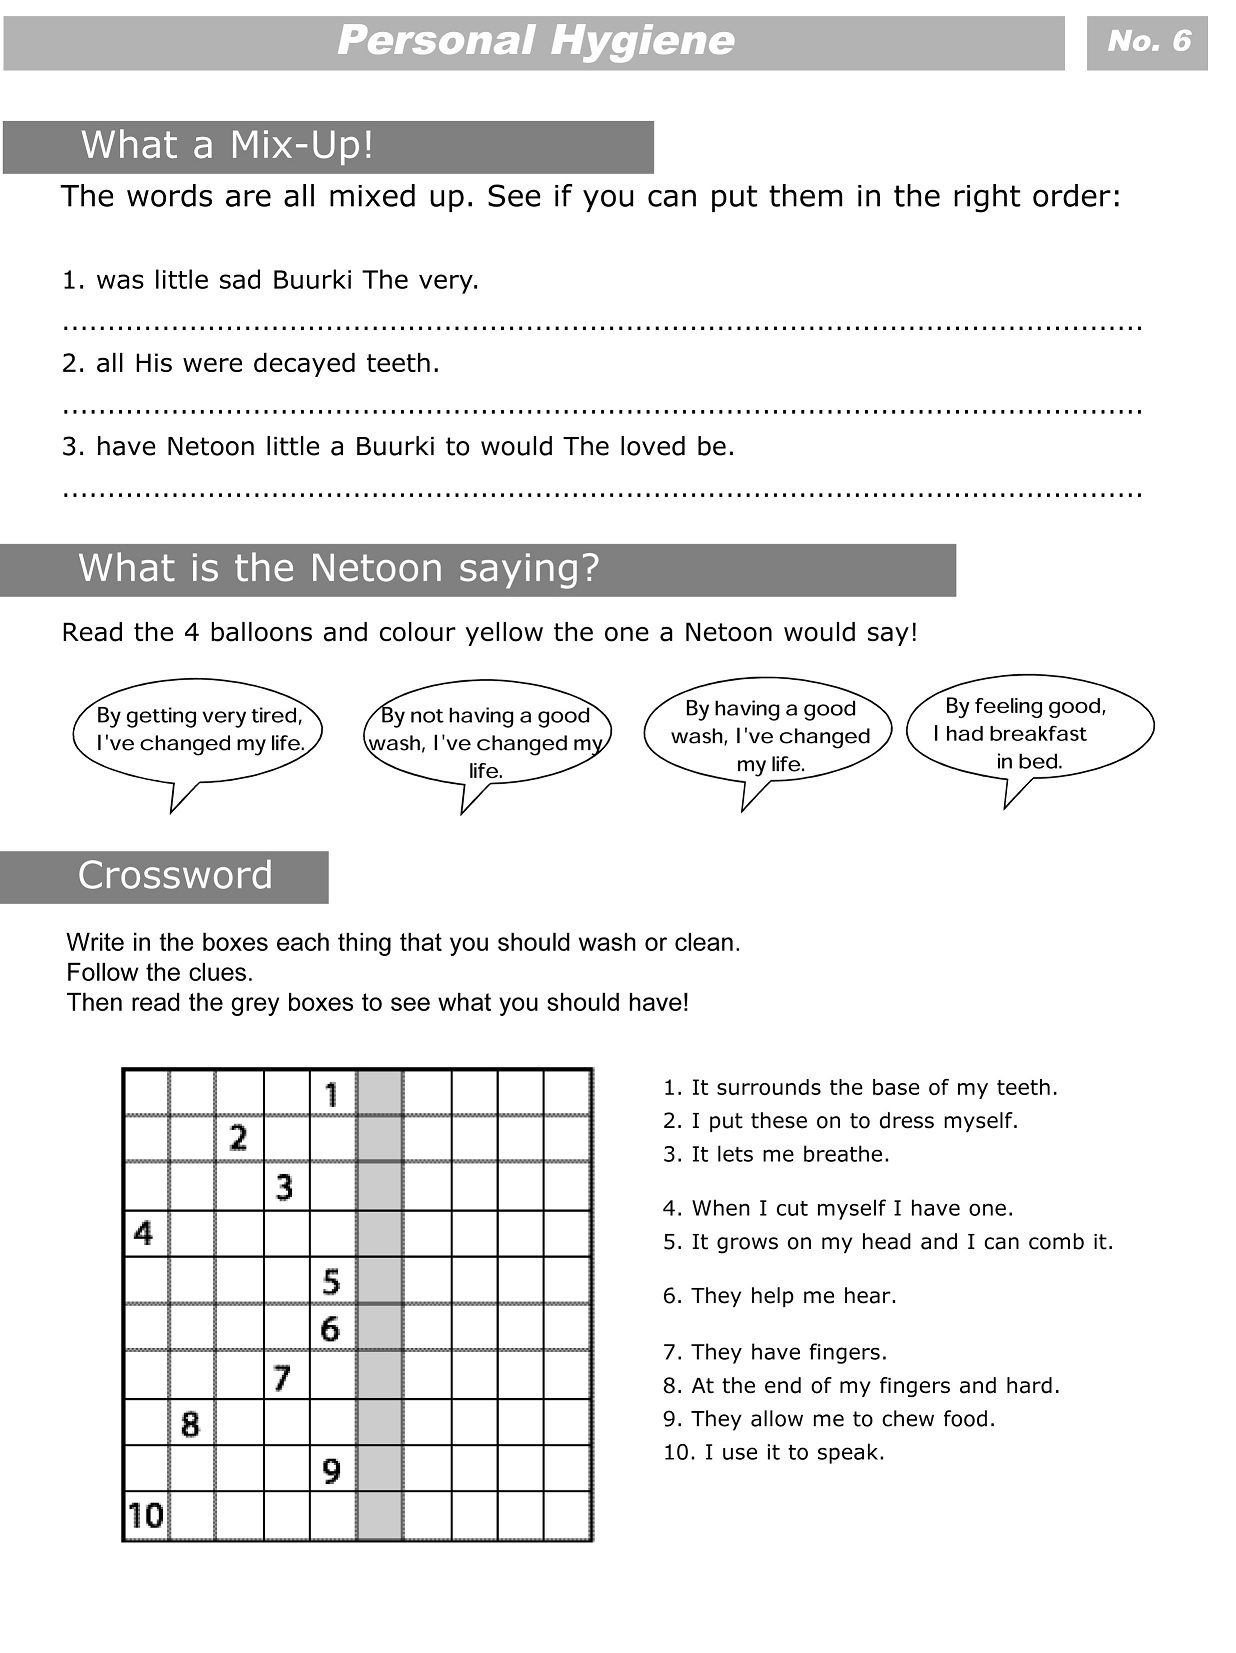 small resolution of PERSONAL HYGIENE (SHEET 6 OF 7)   Personal hygiene worksheets